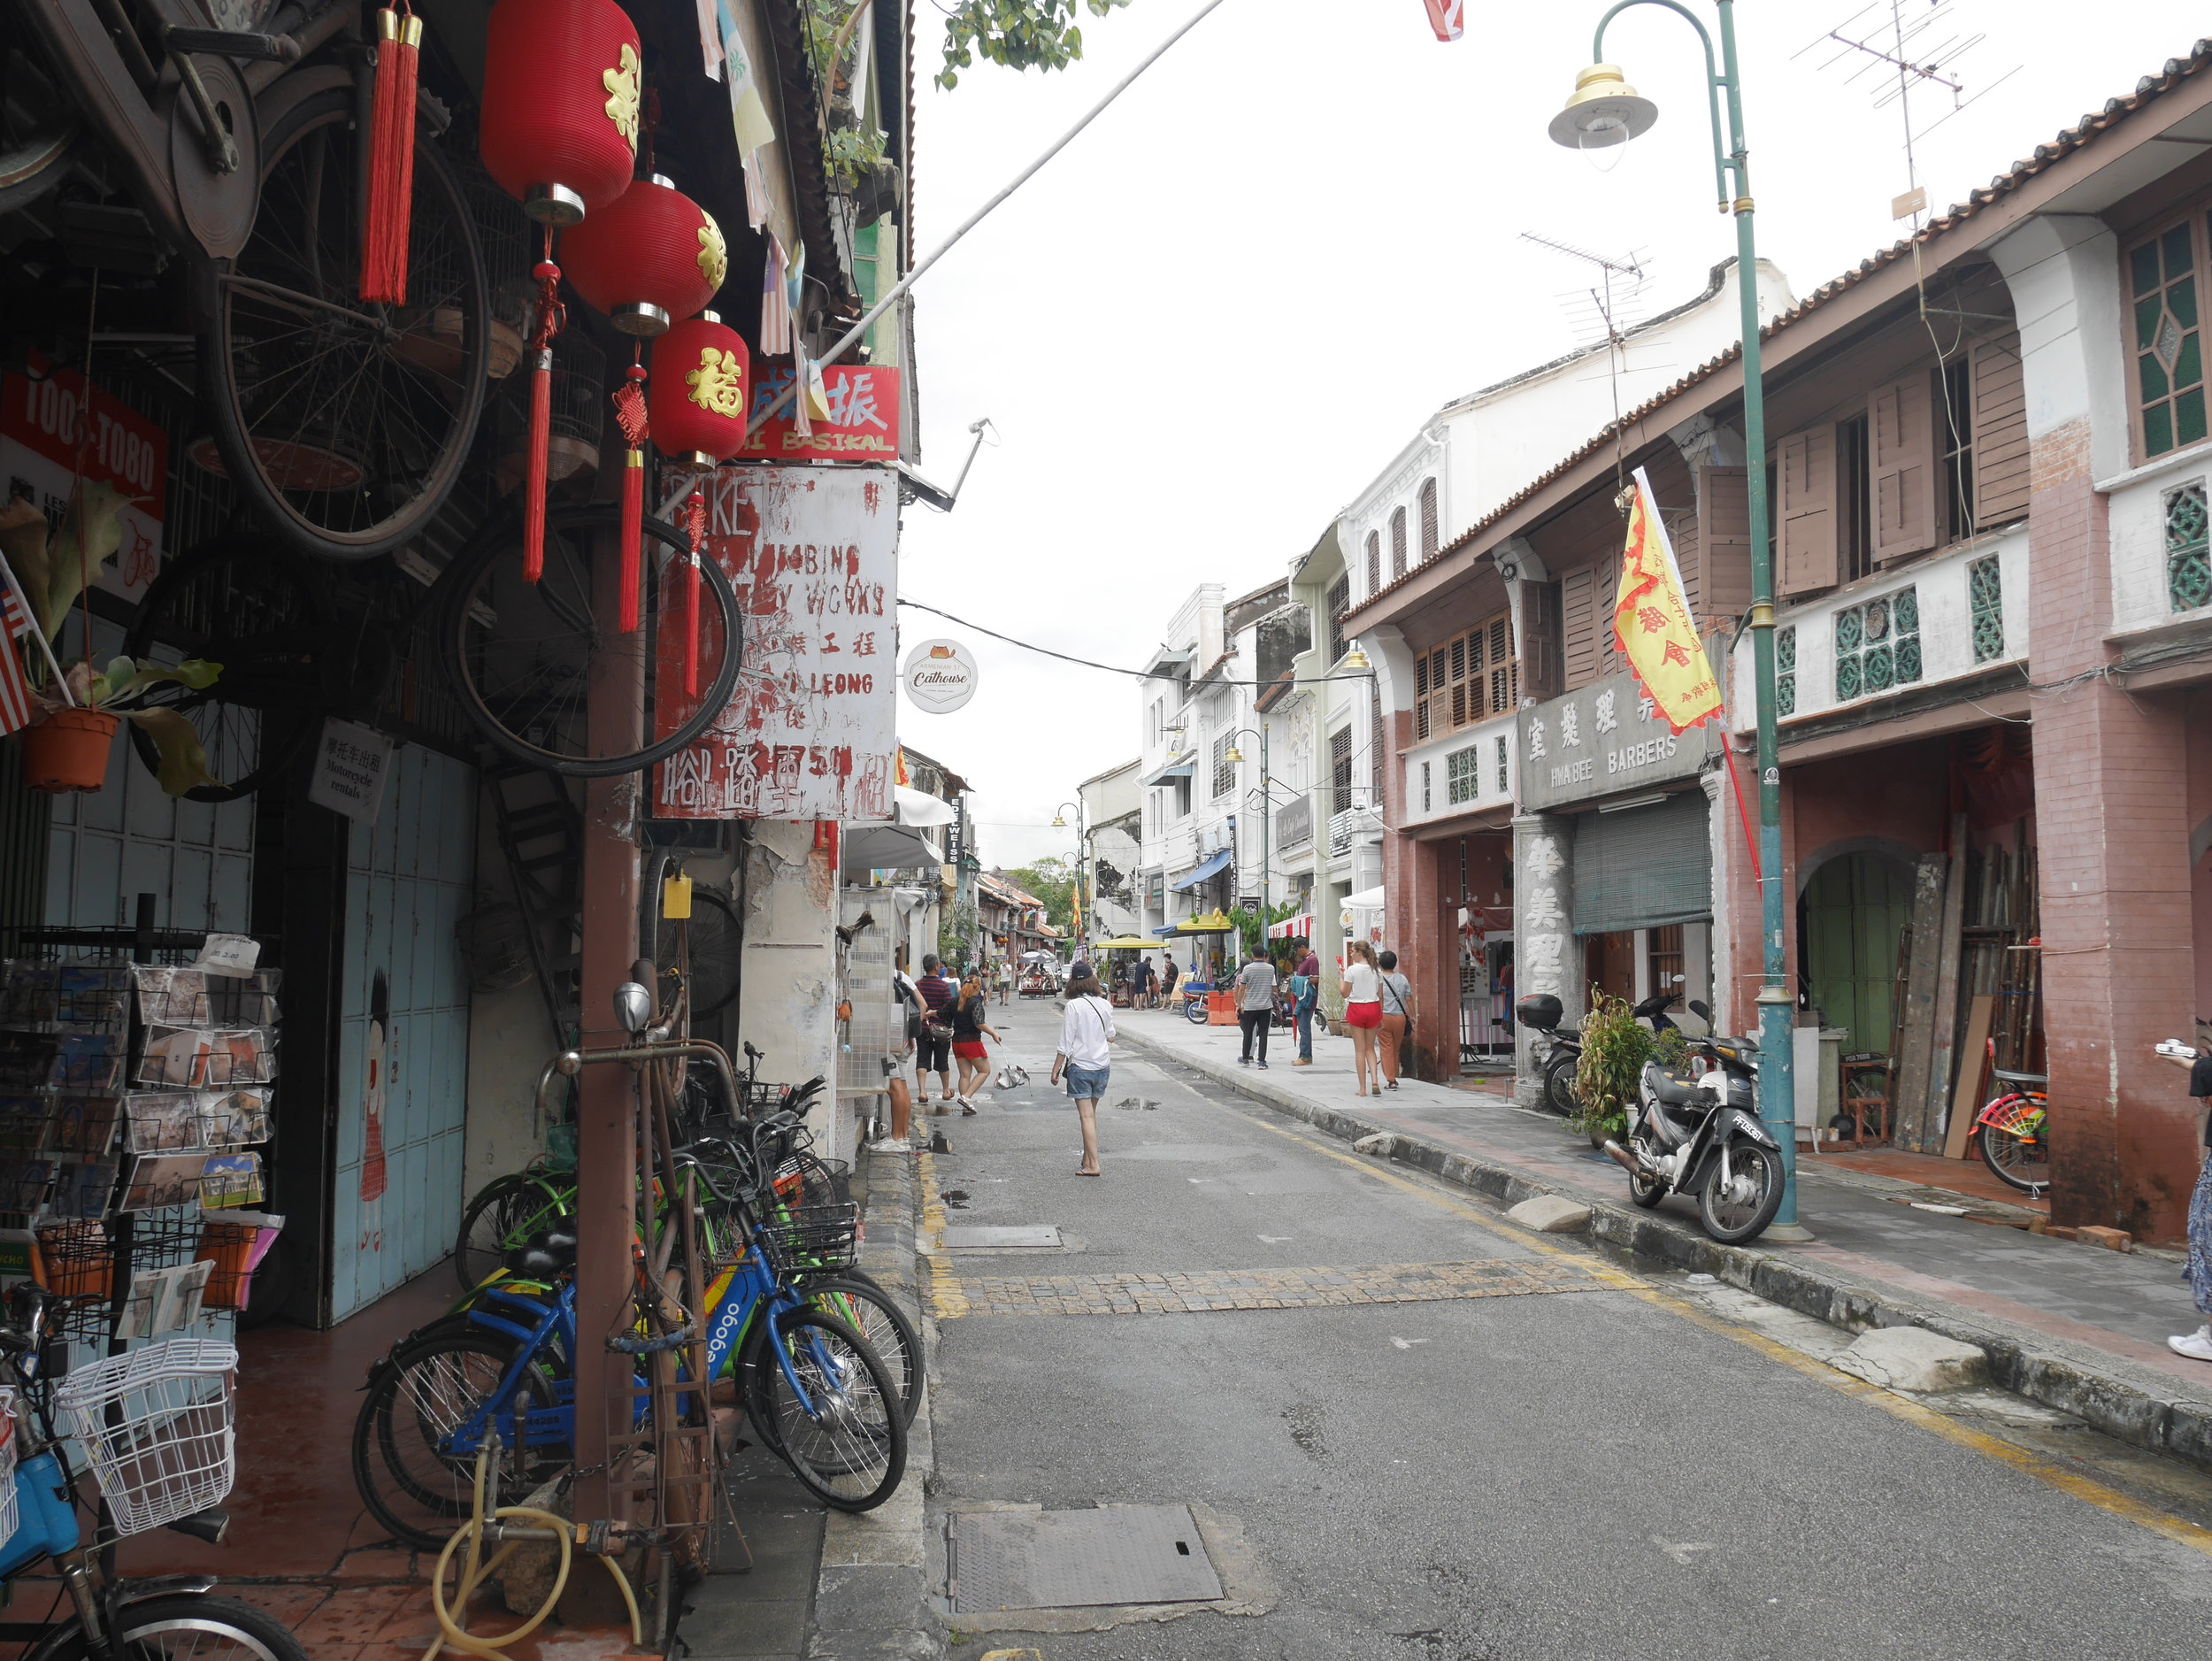 Penang's colonial Old Town is a recognized UNESCO World Heritage City